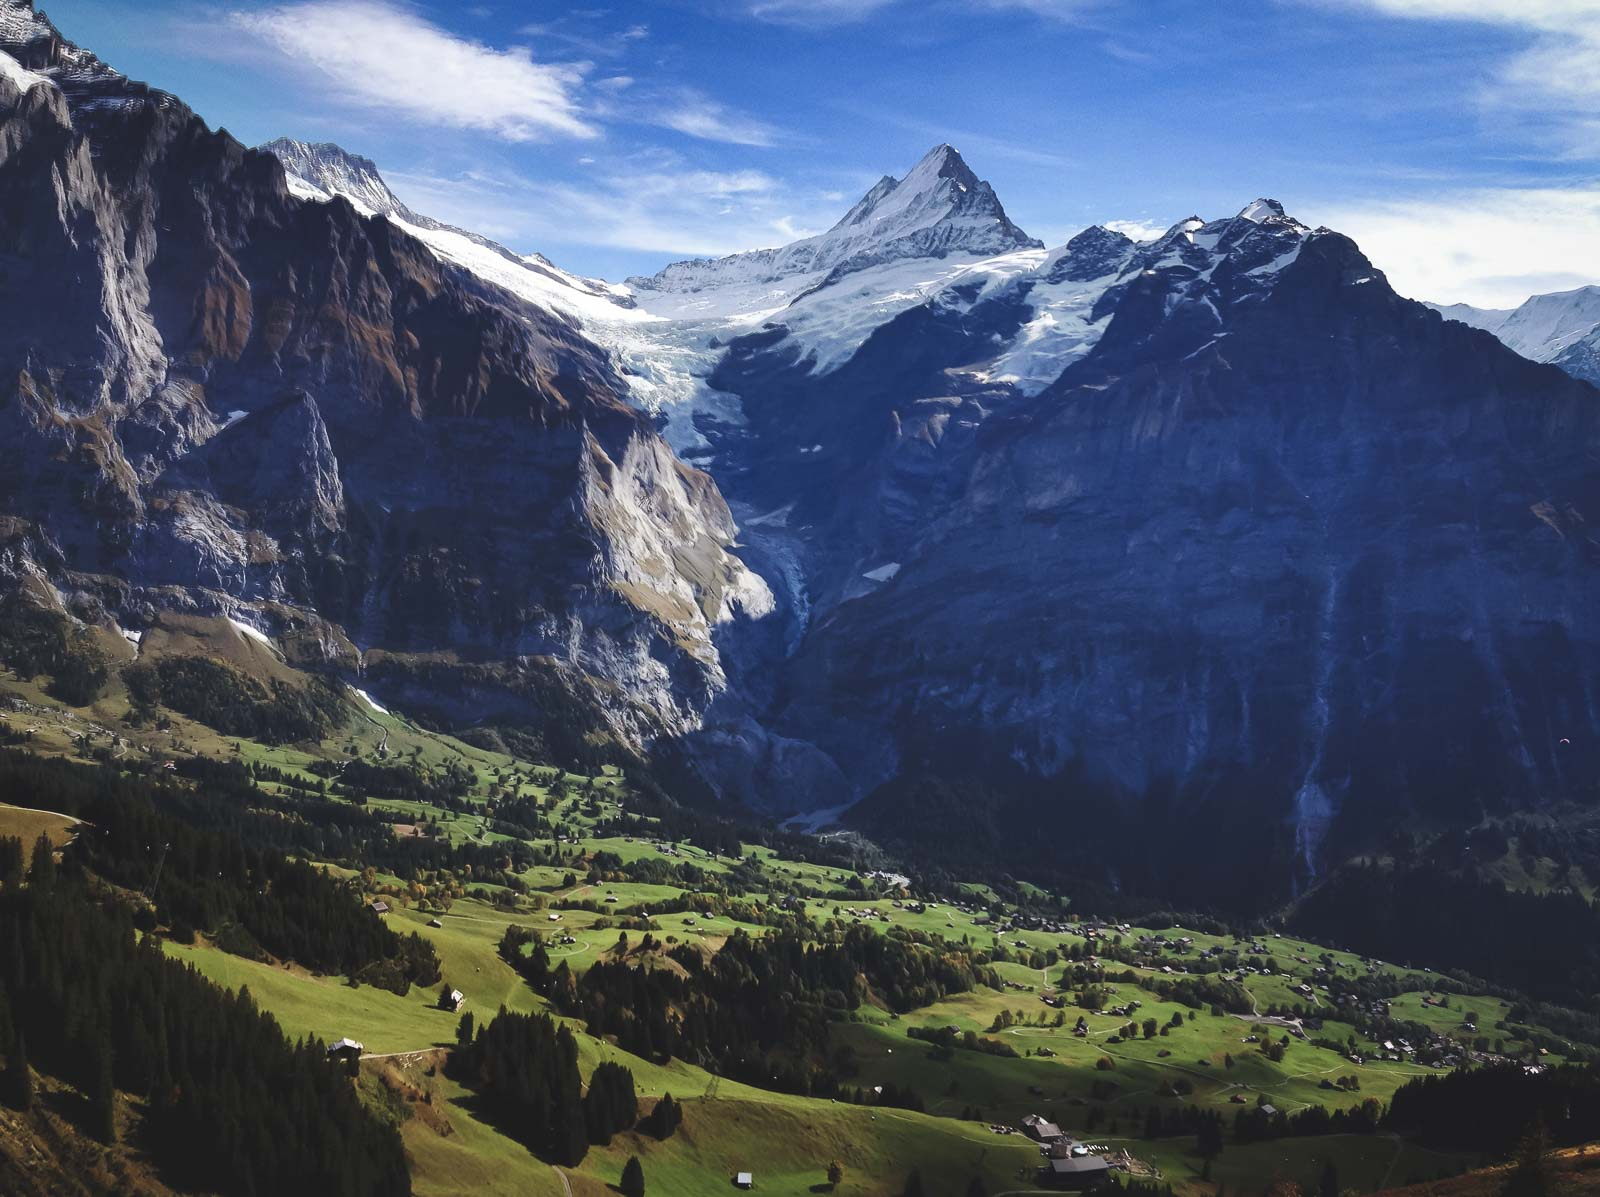 View from First Glider Grindelwald